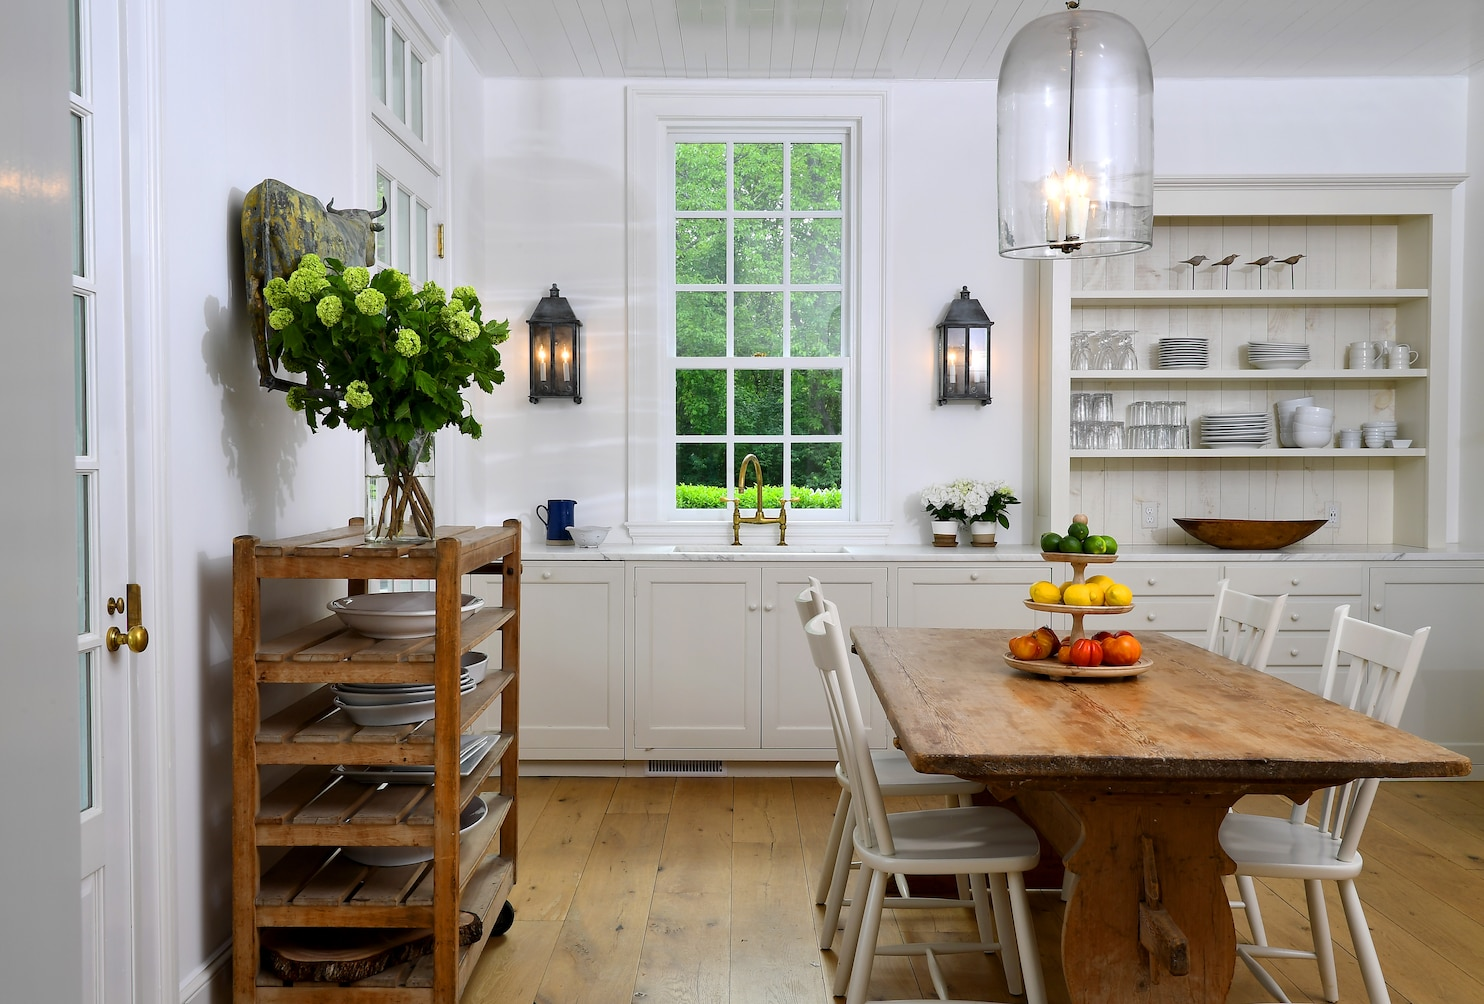 How To Get Farmhouse Style Without The Country Cliches